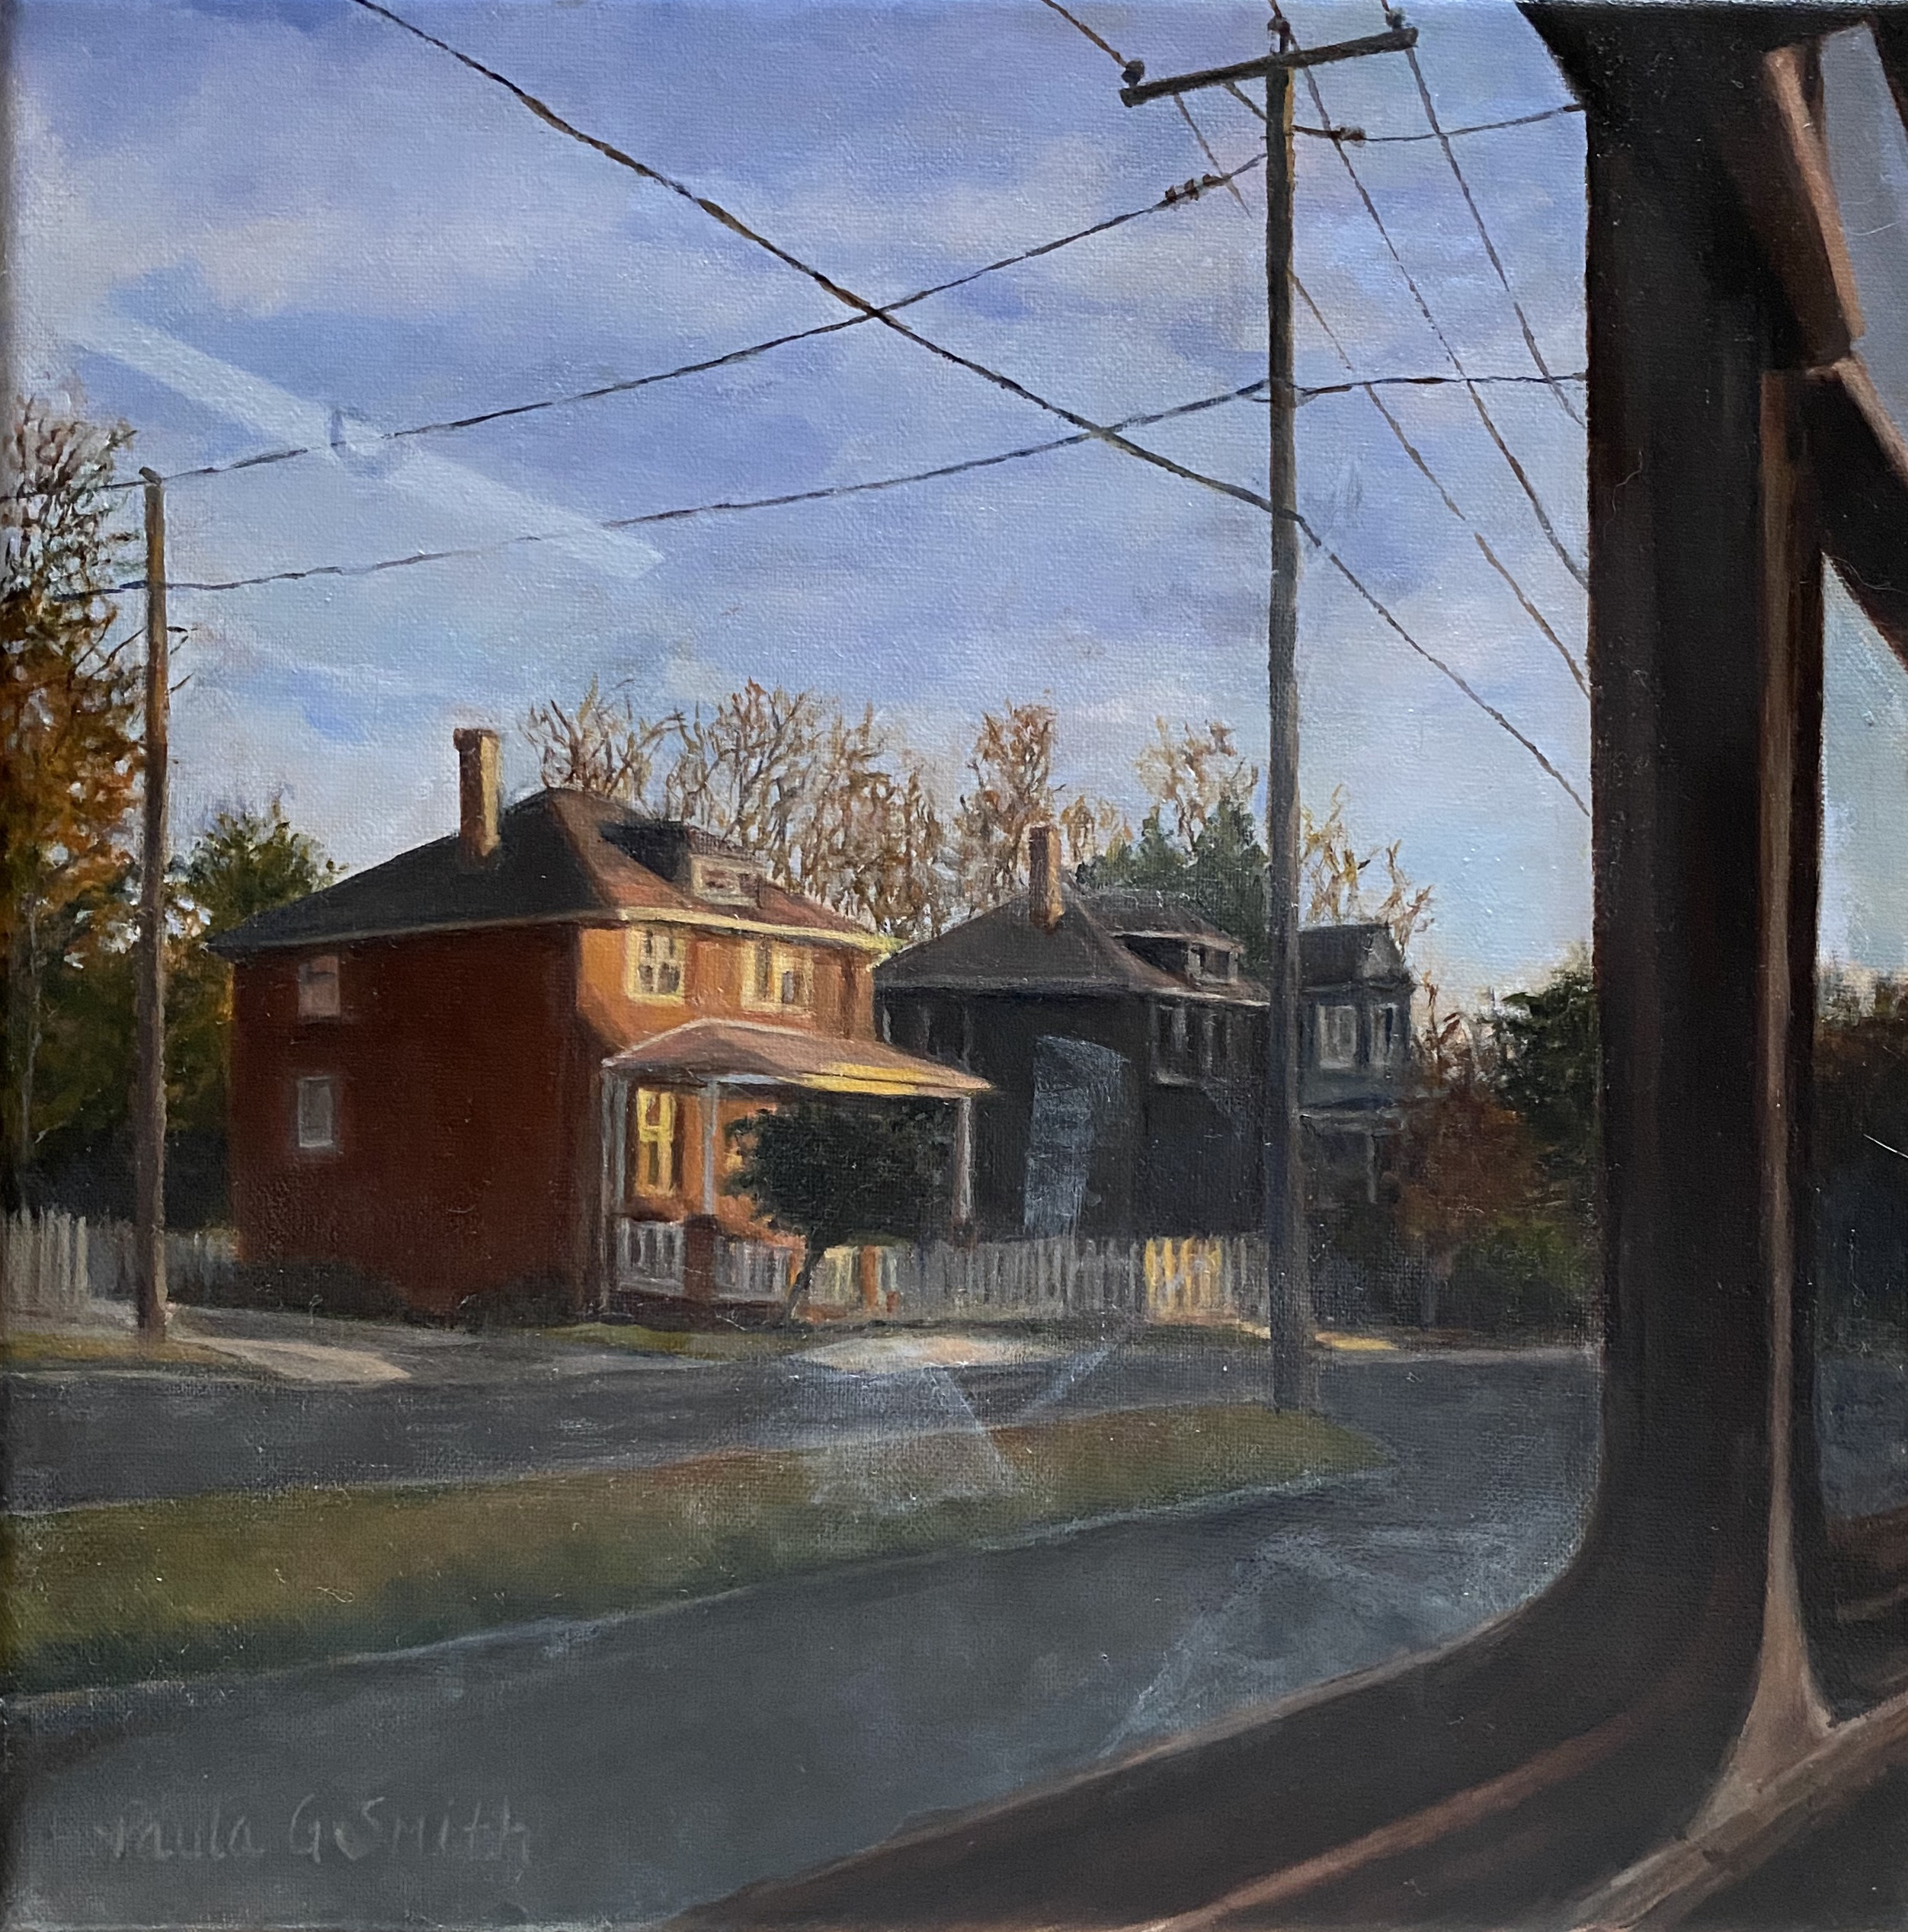 Oil painting of a house, testimonial from student, Paula Smith of RL Caldwell Studio